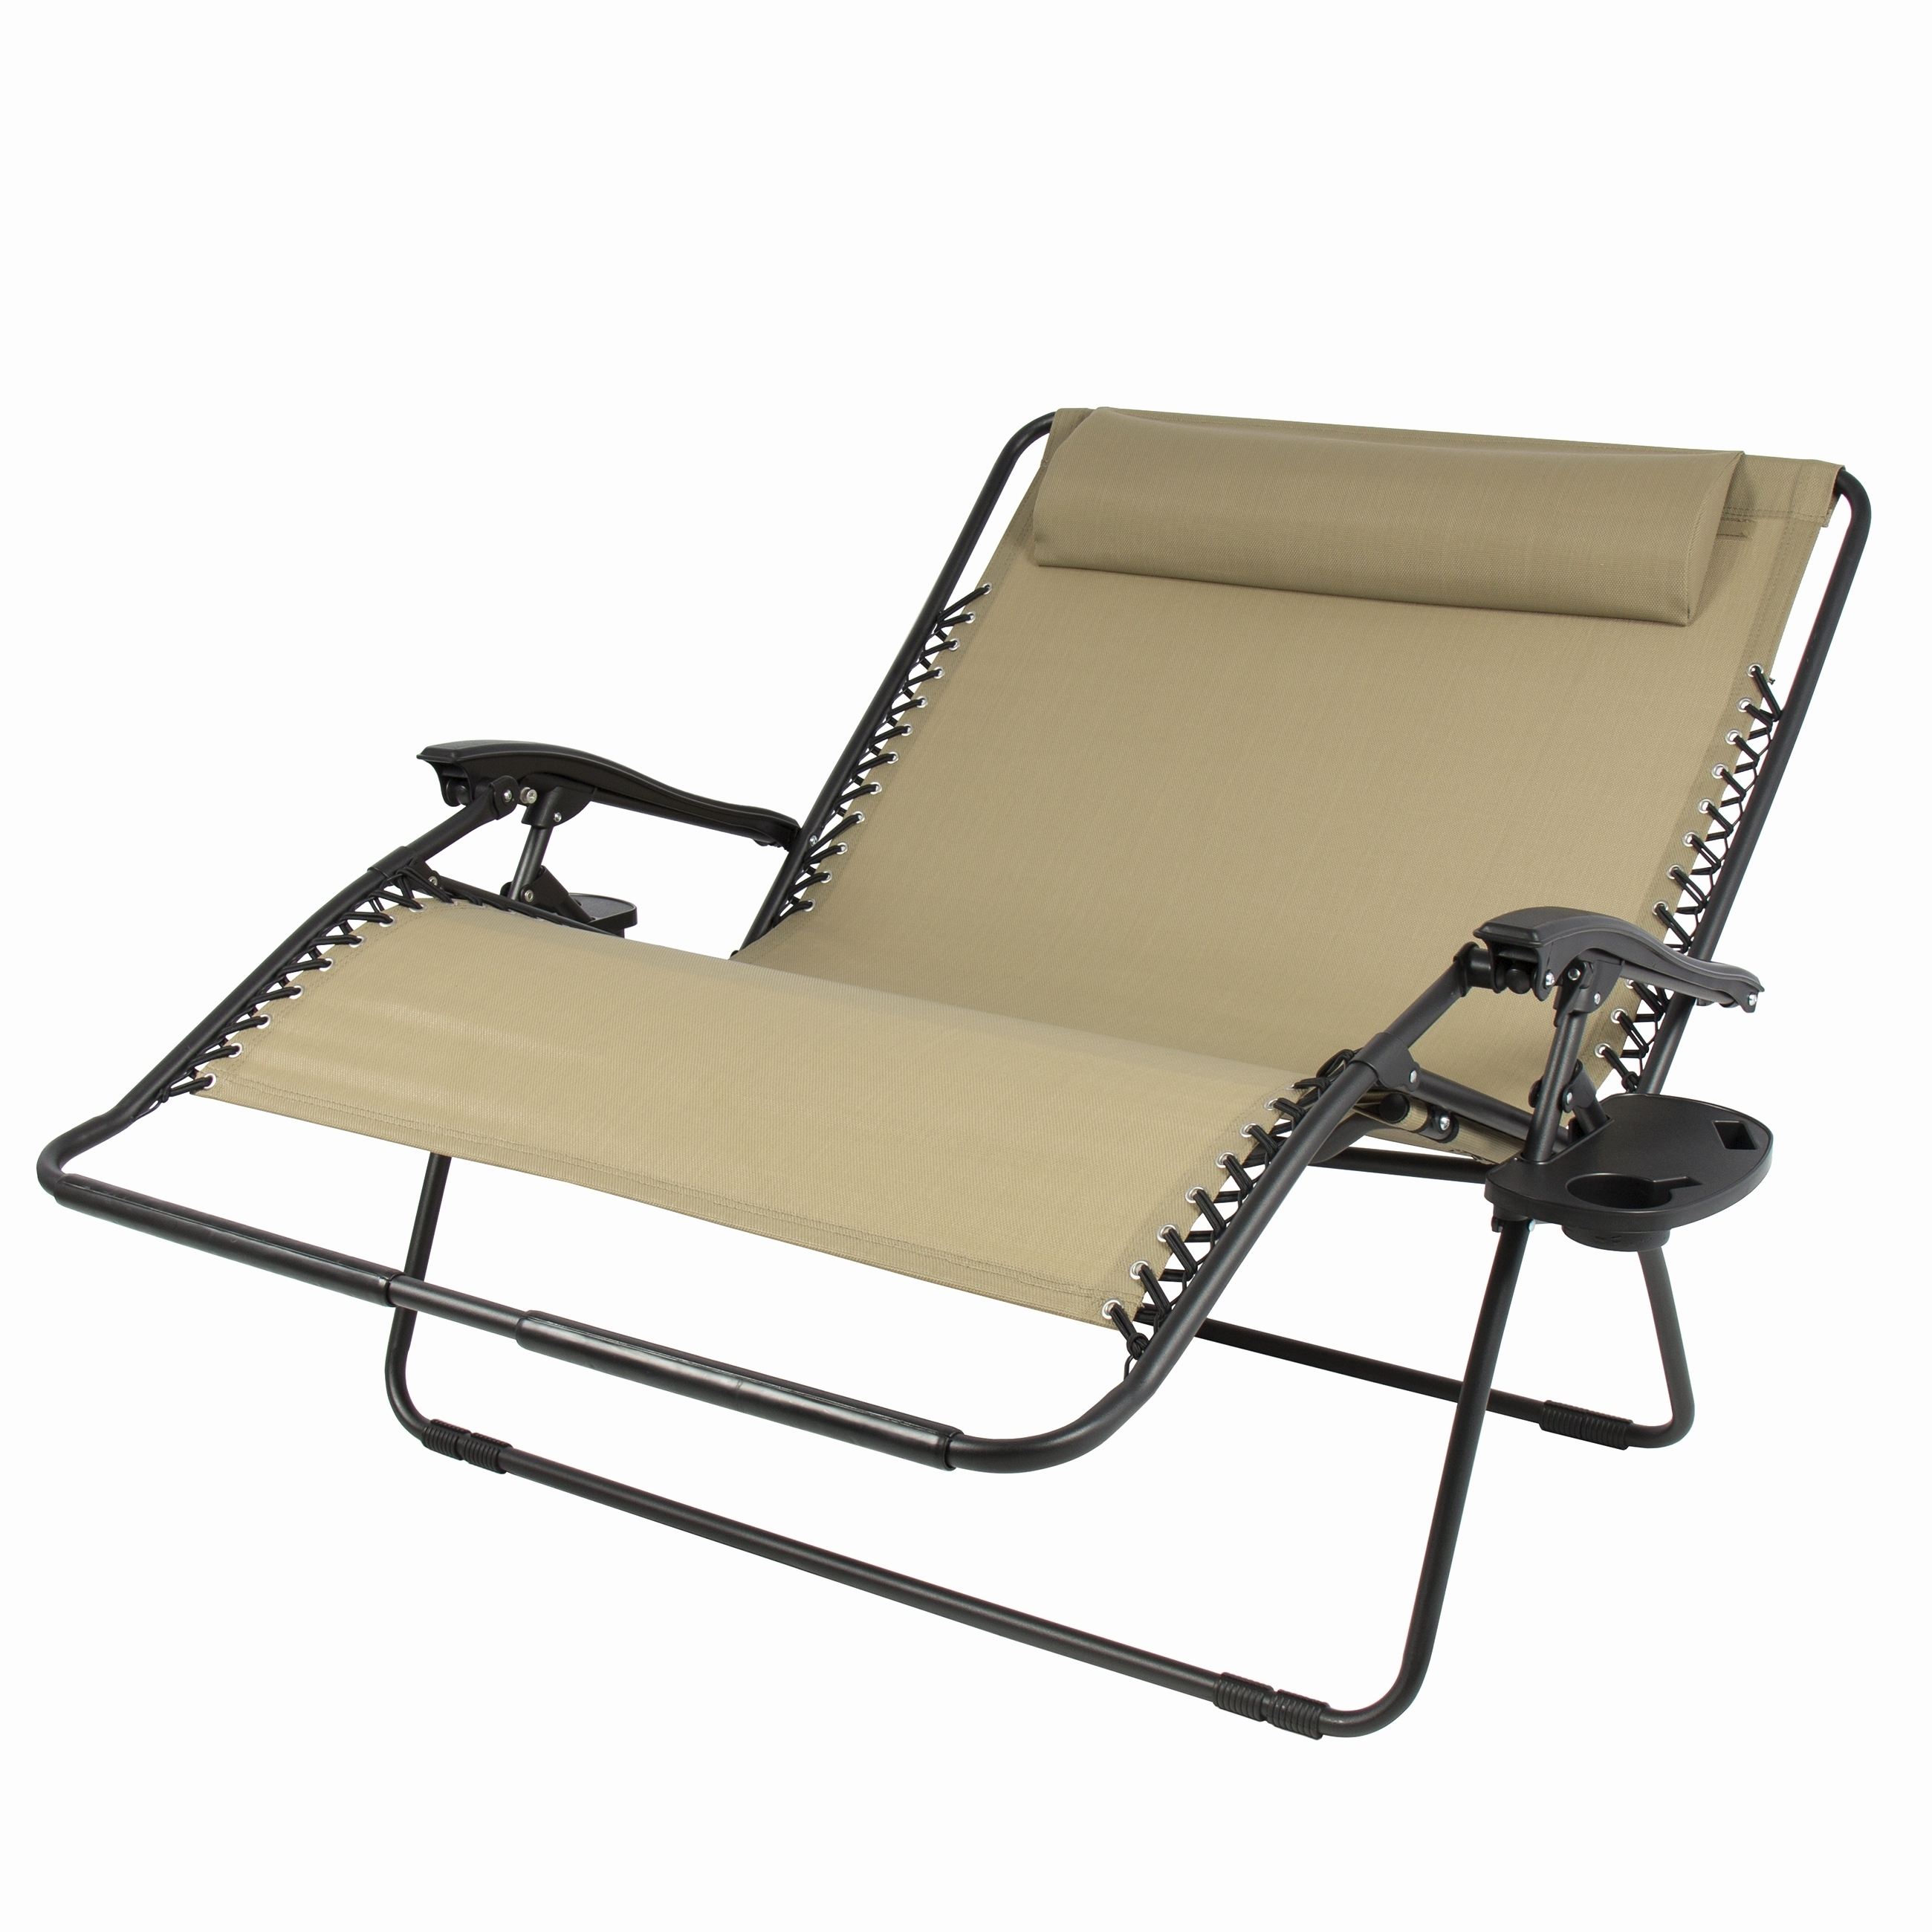 Popular Convertible Chair : Lounges Outdoor Wood Chaise Lounge Clearance Regarding Portable Outdoor Chaise Lounge Chairs (View 8 of 15)